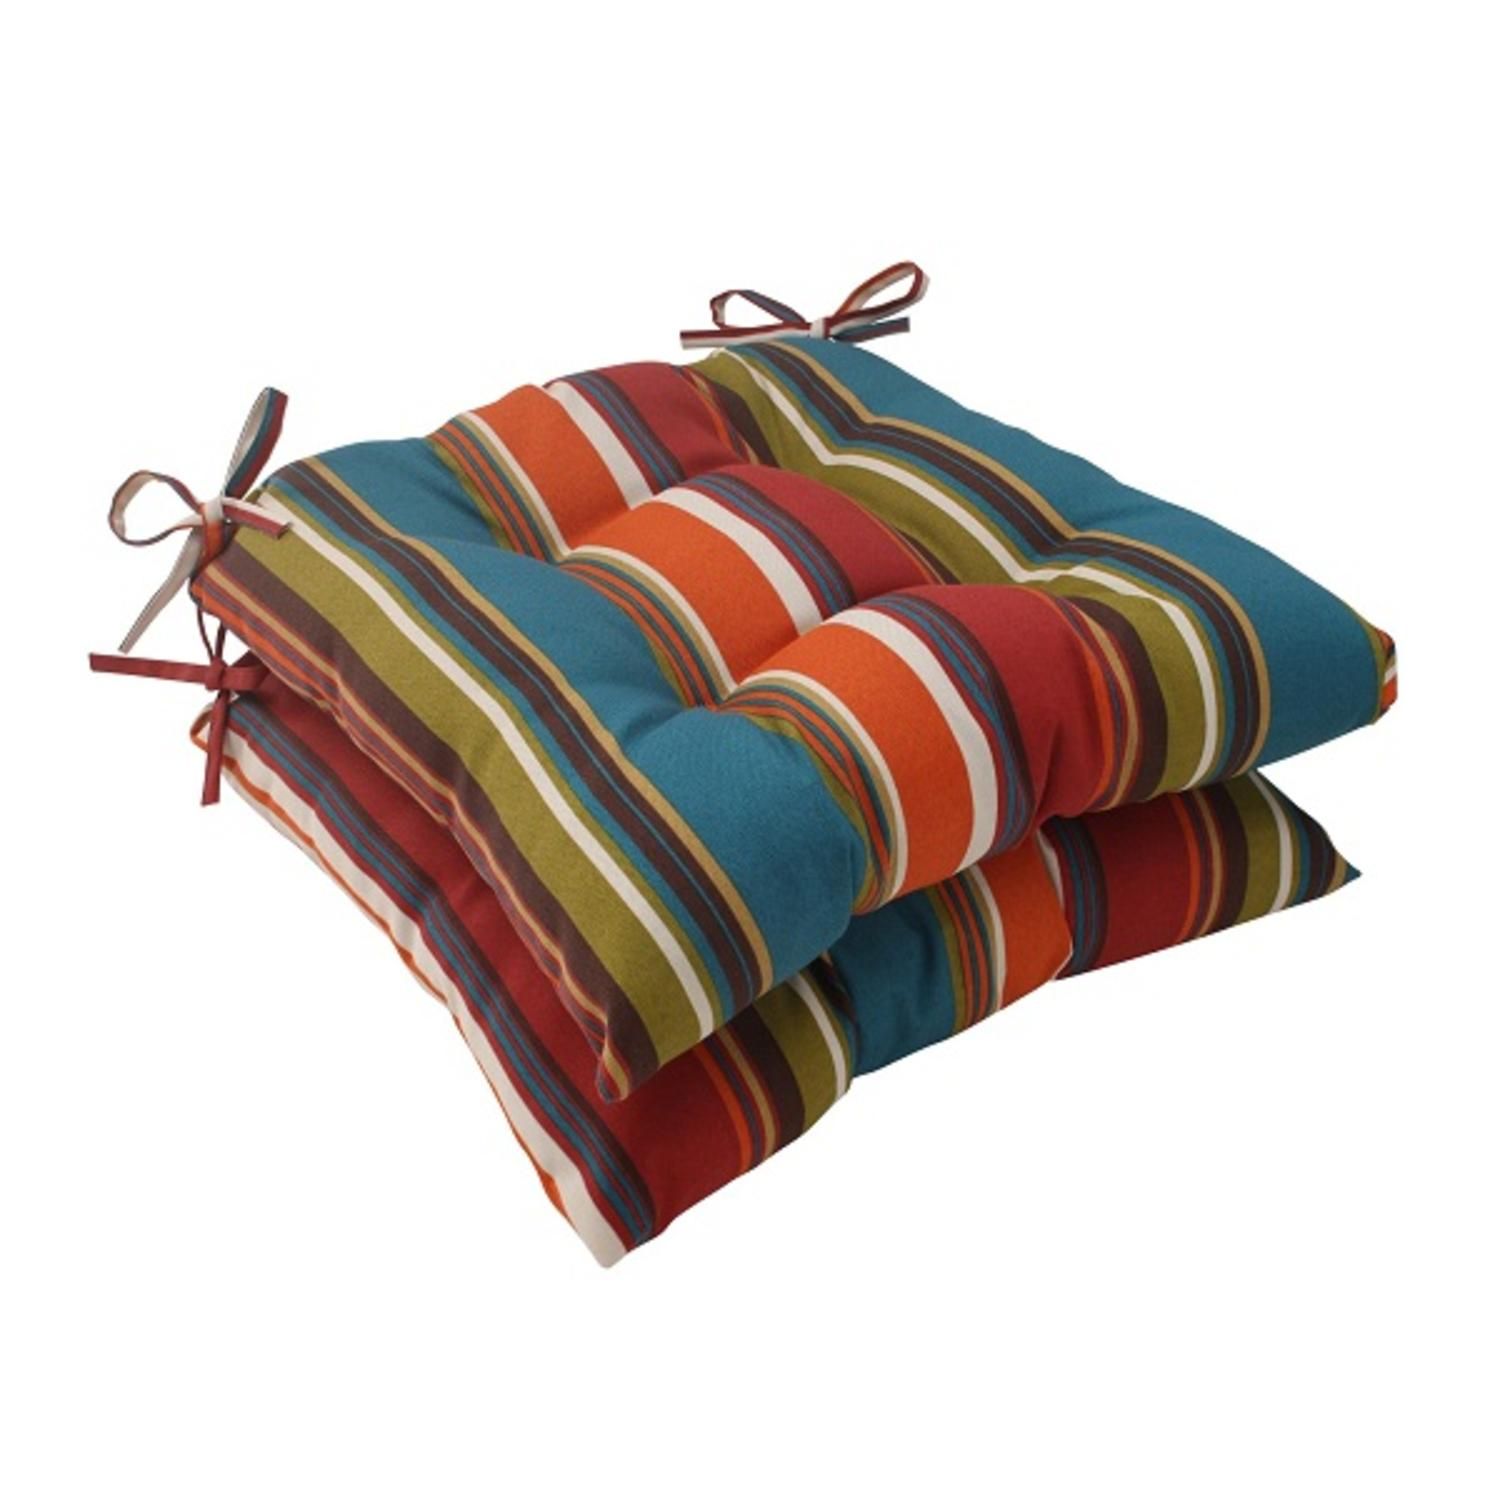 Set of 2 Moroccan Multi-color Striped Outdoor Tufted Seat Cushions 19